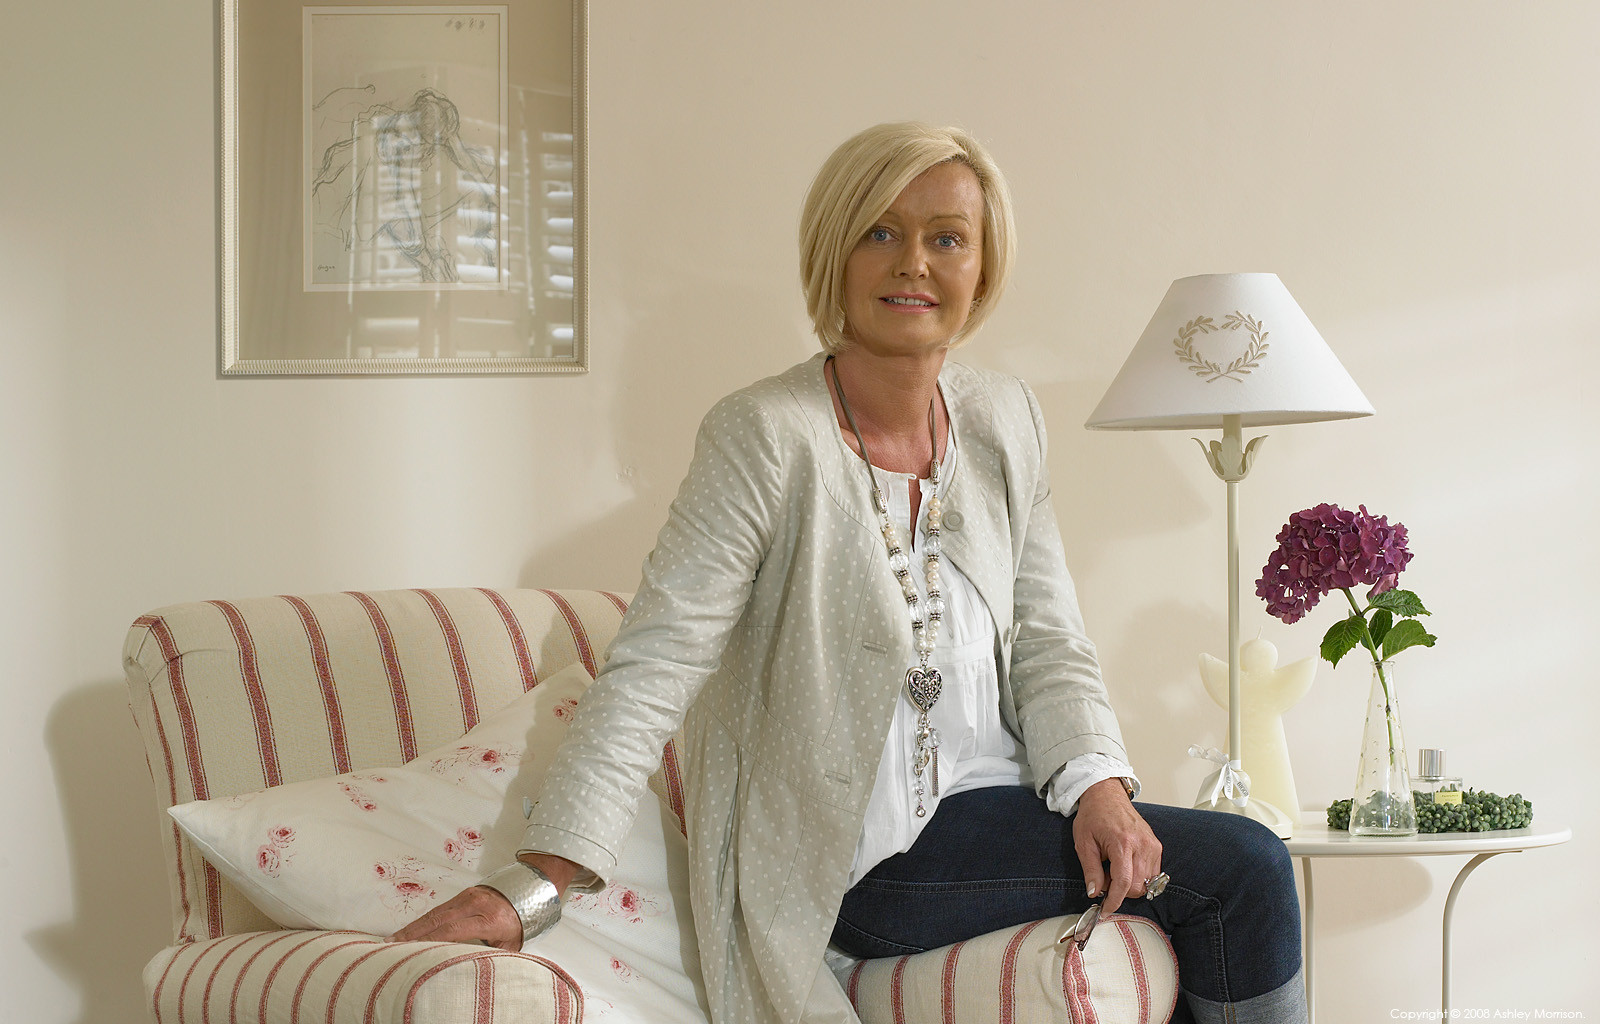 Yolanda Cubitt in her cottage near Ballymena in County Antrim by Ashley Morrison.